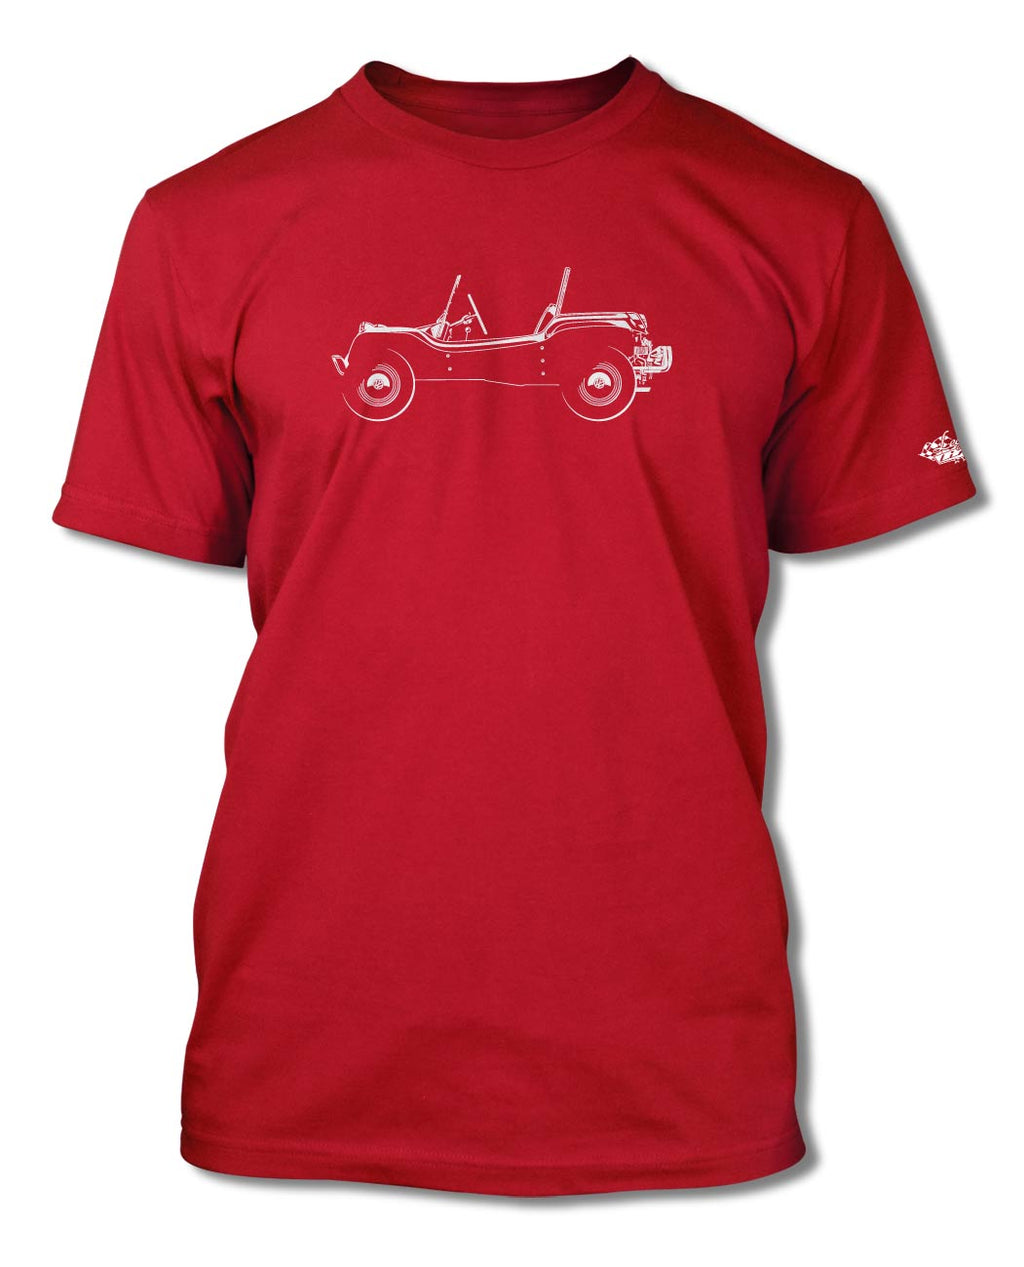 1964 Meyers Manx Buggy VW T-Shirt - Men - Side View